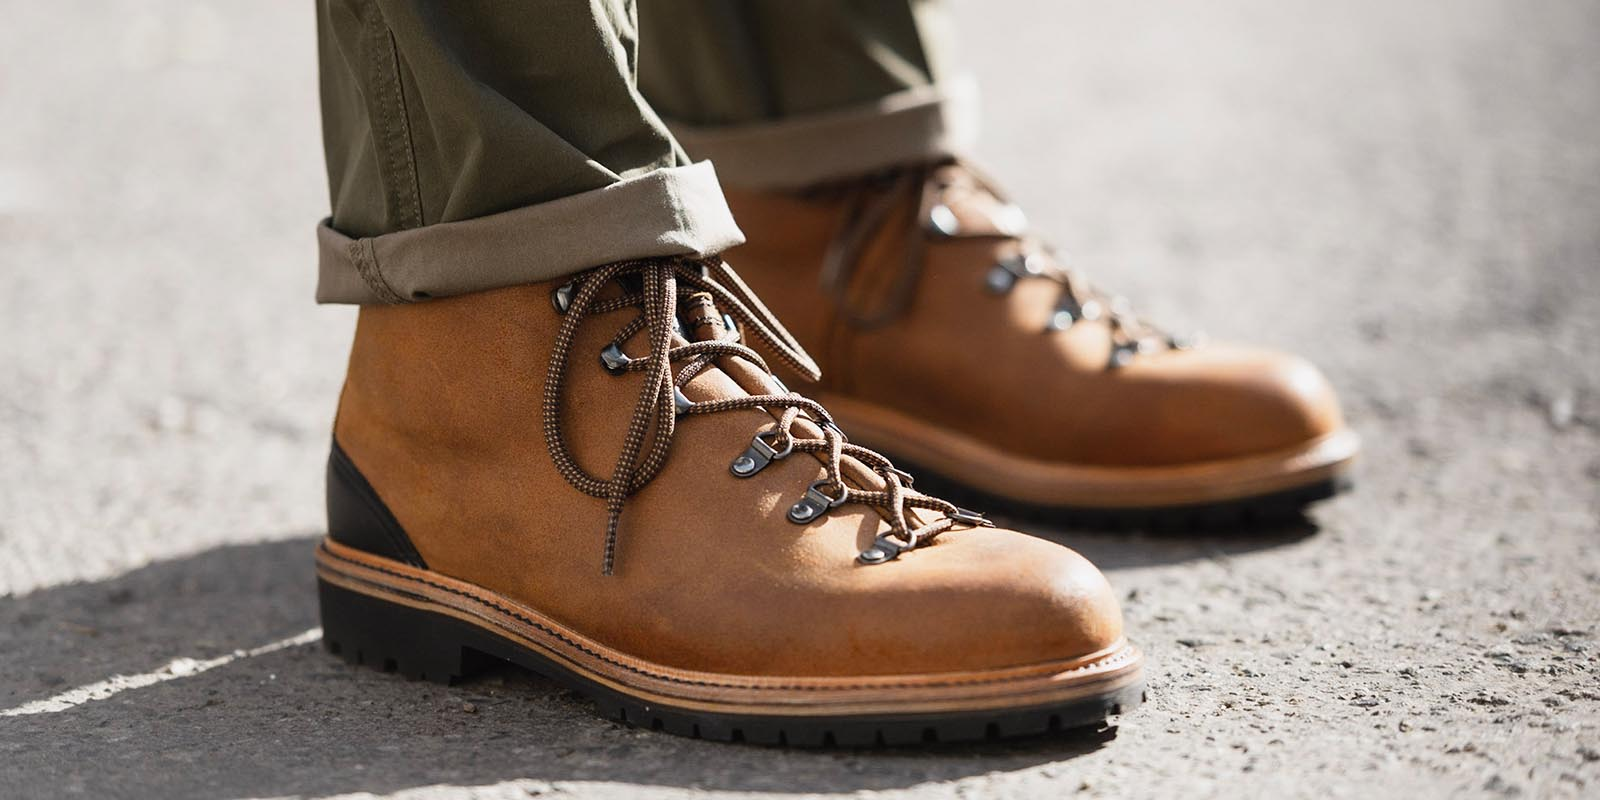 New Products : Asolo Boots Canada Sale, Timberland Boots